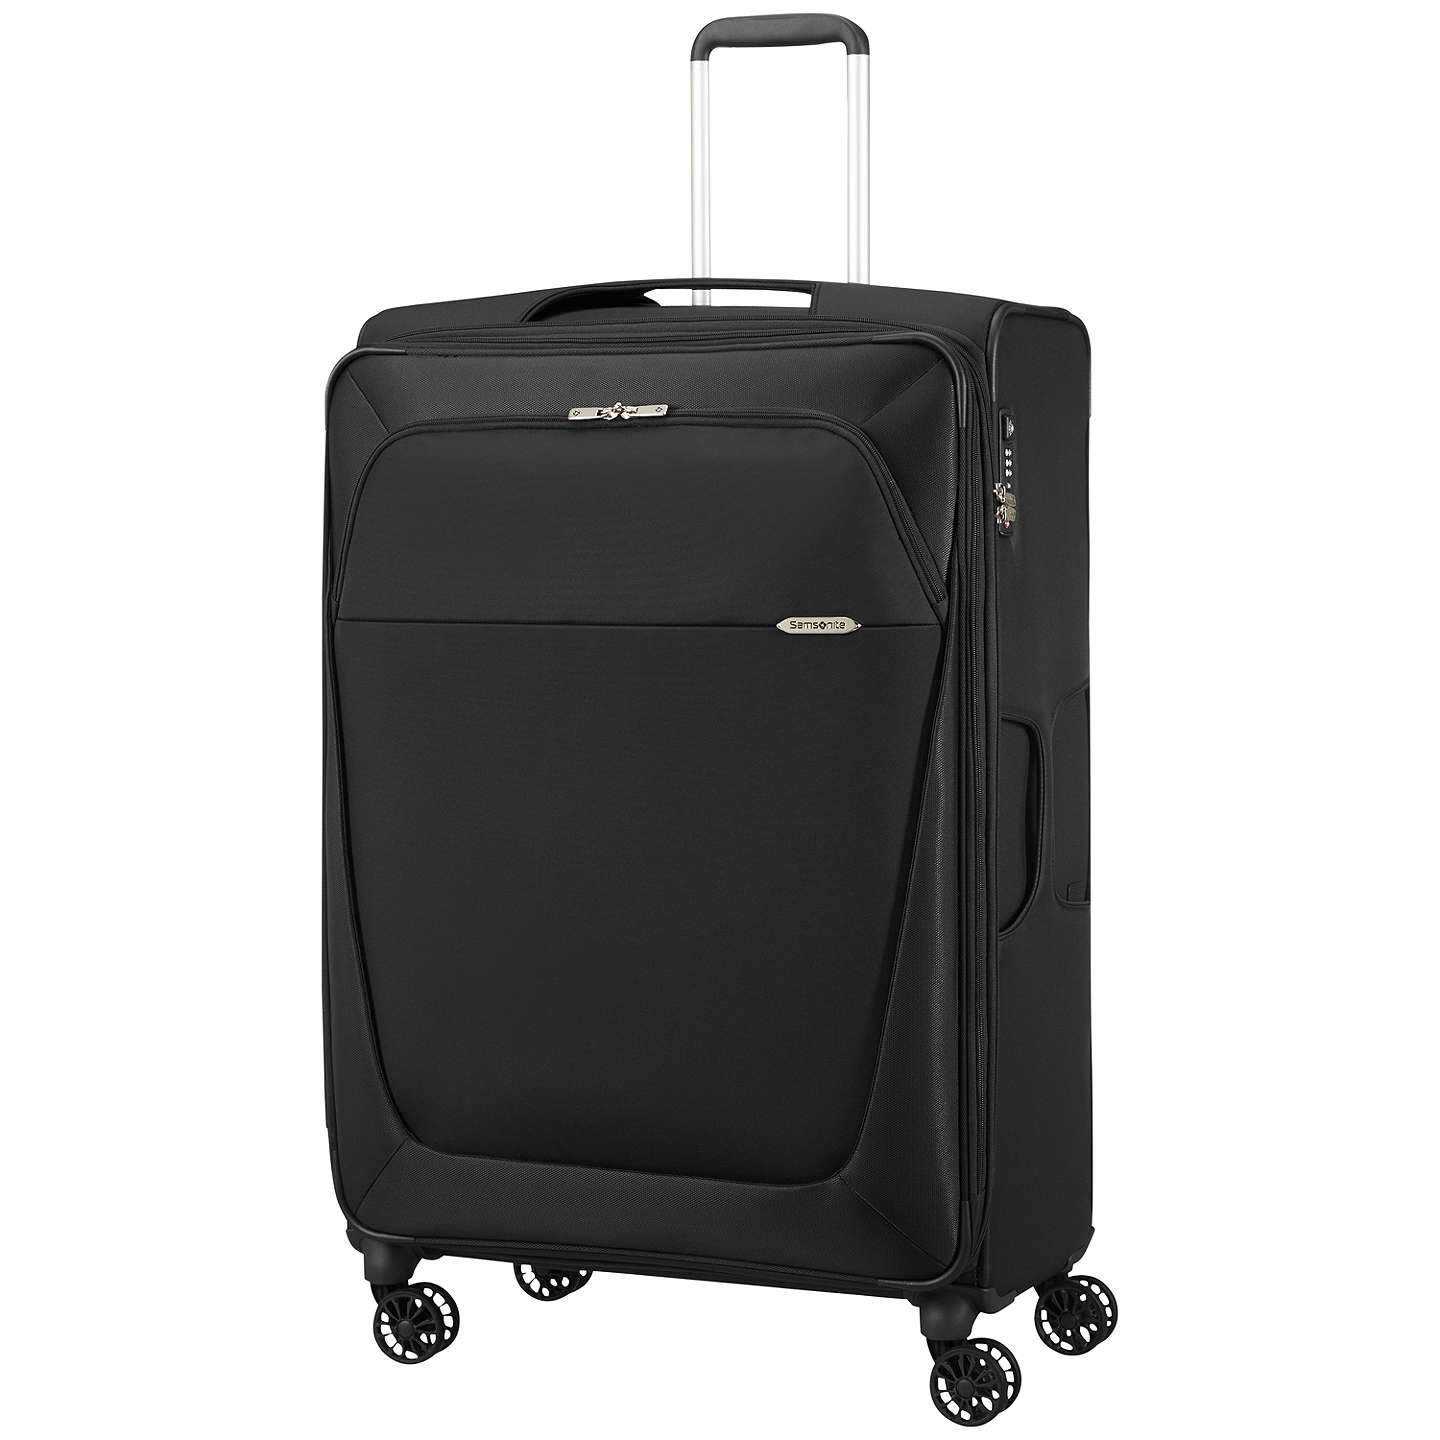 BuySamsonite B-Lite 3 4-Wheel 83cm Large Suitcase, Black Online at johnlewis.com